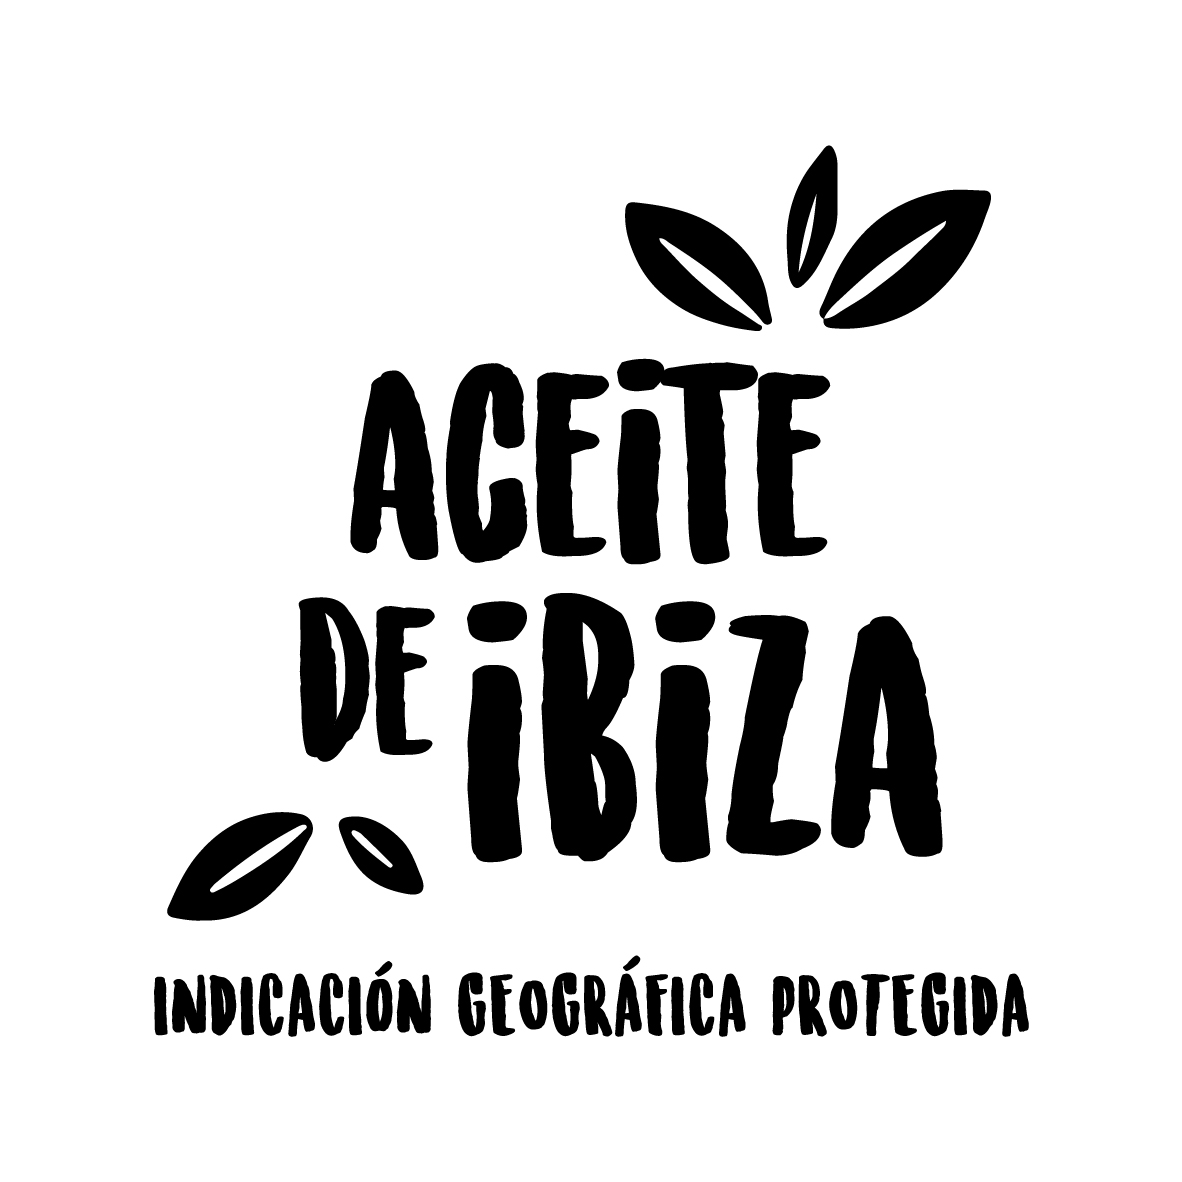 Oil of Ibiza - Balearic Islands - Agrifoodstuffs, designations of origin and Balearic gastronomy